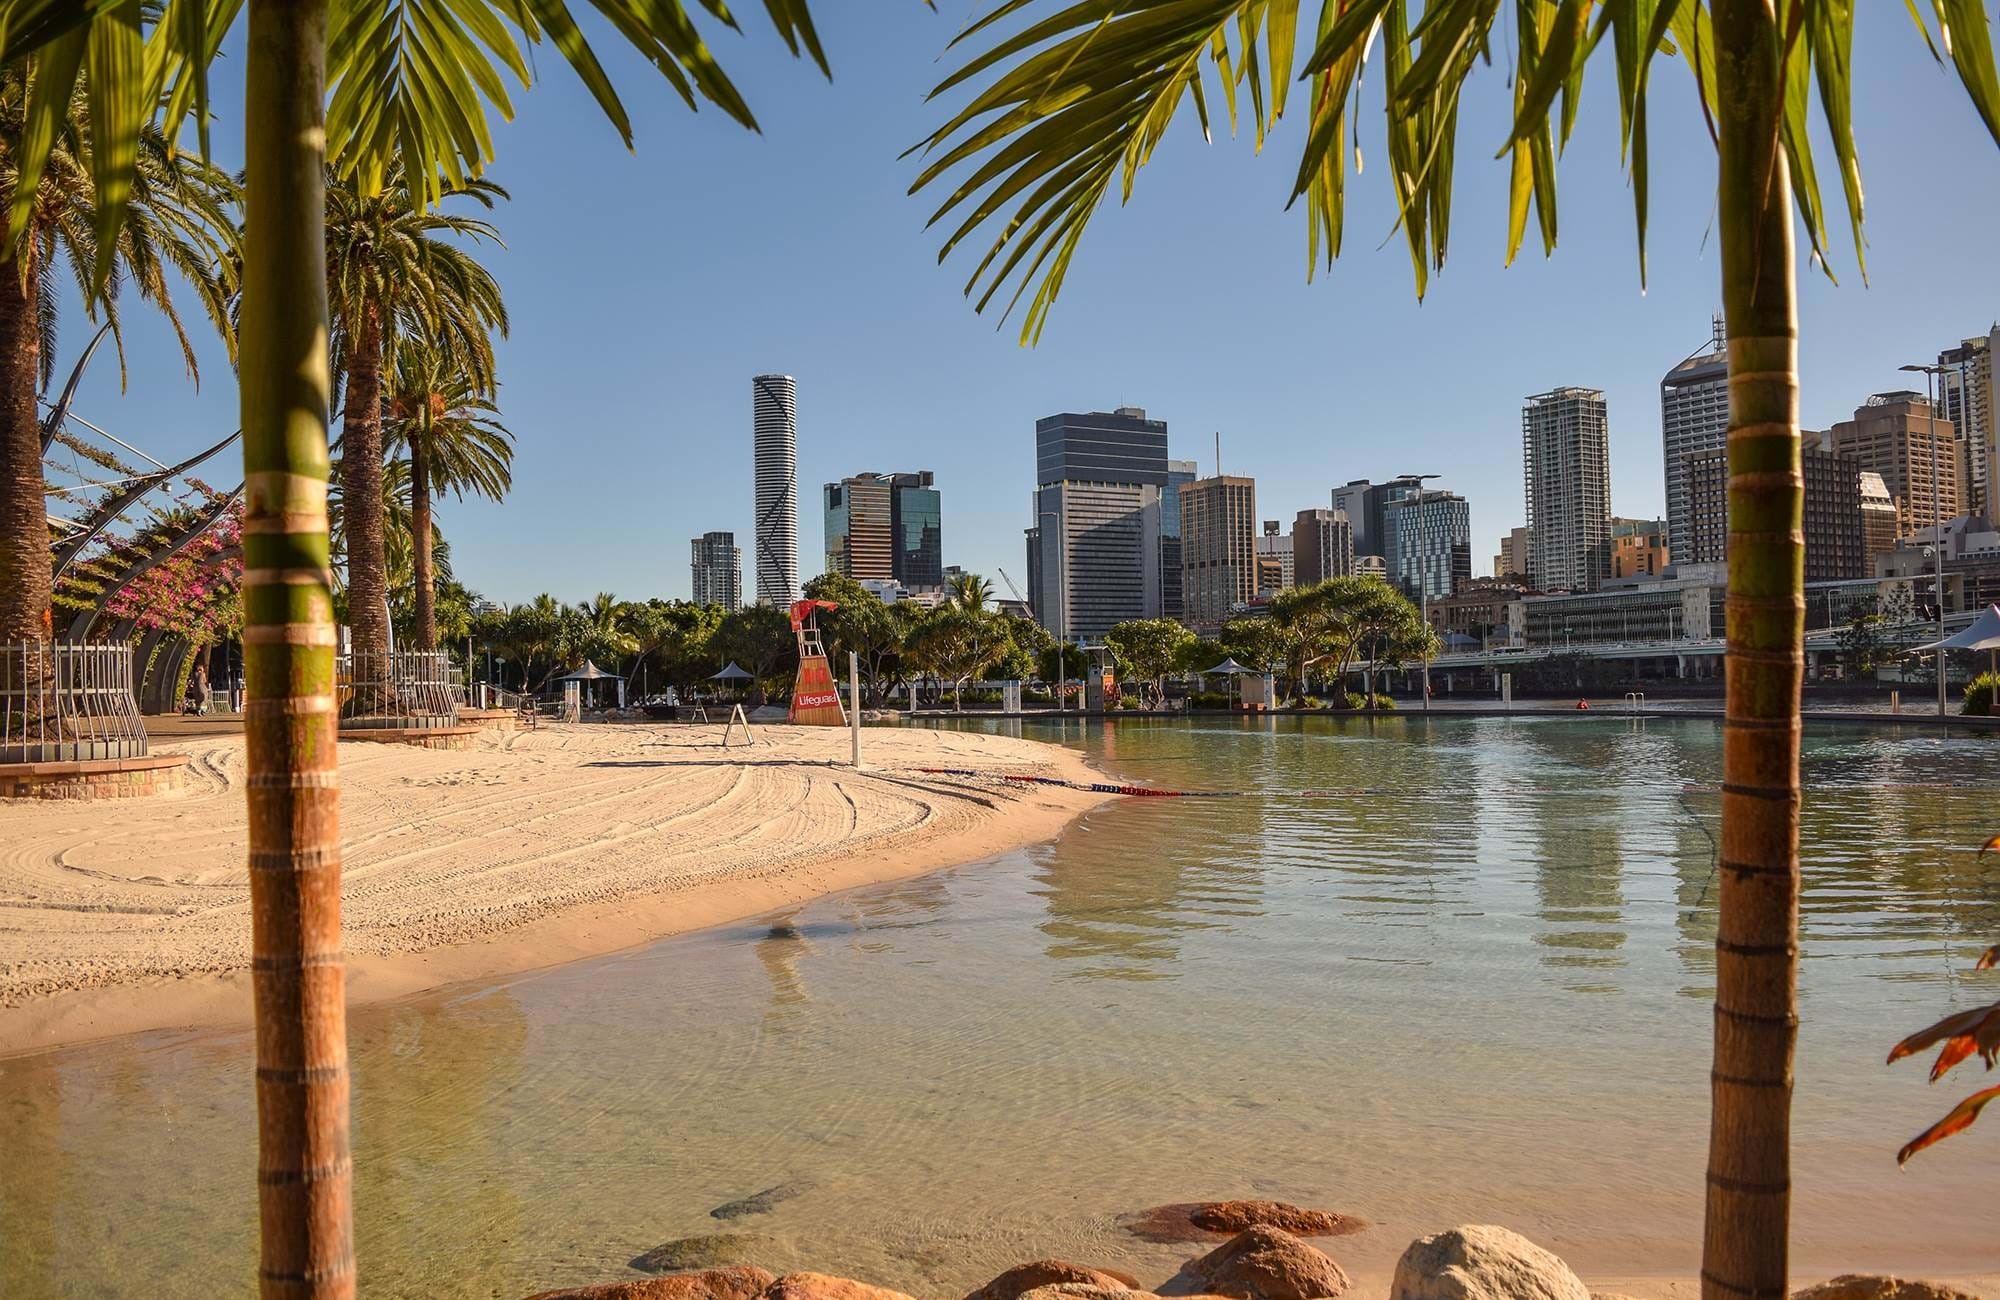 the manmade beach in brisbane is well visited and popular amongst students in Brisbane